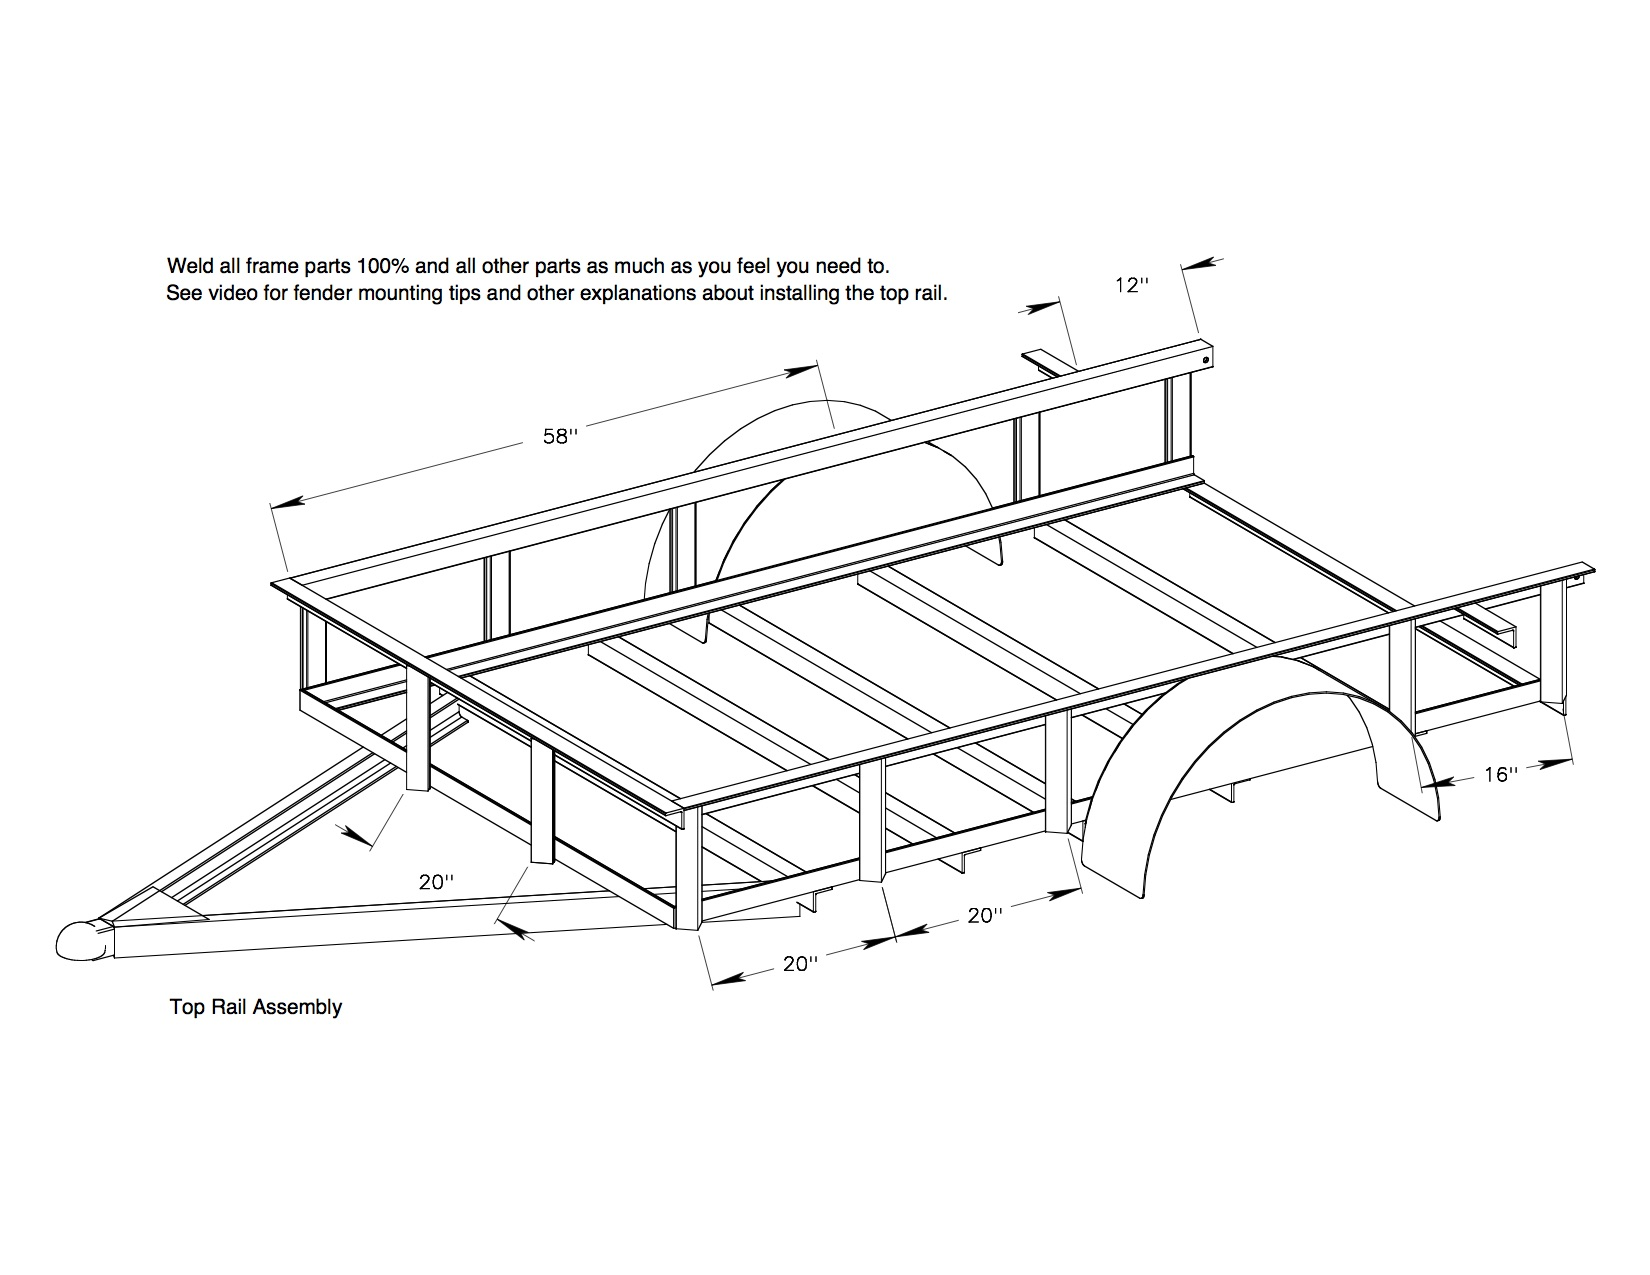 Camper Trailer Plans Free With Elegant Images In Thailand